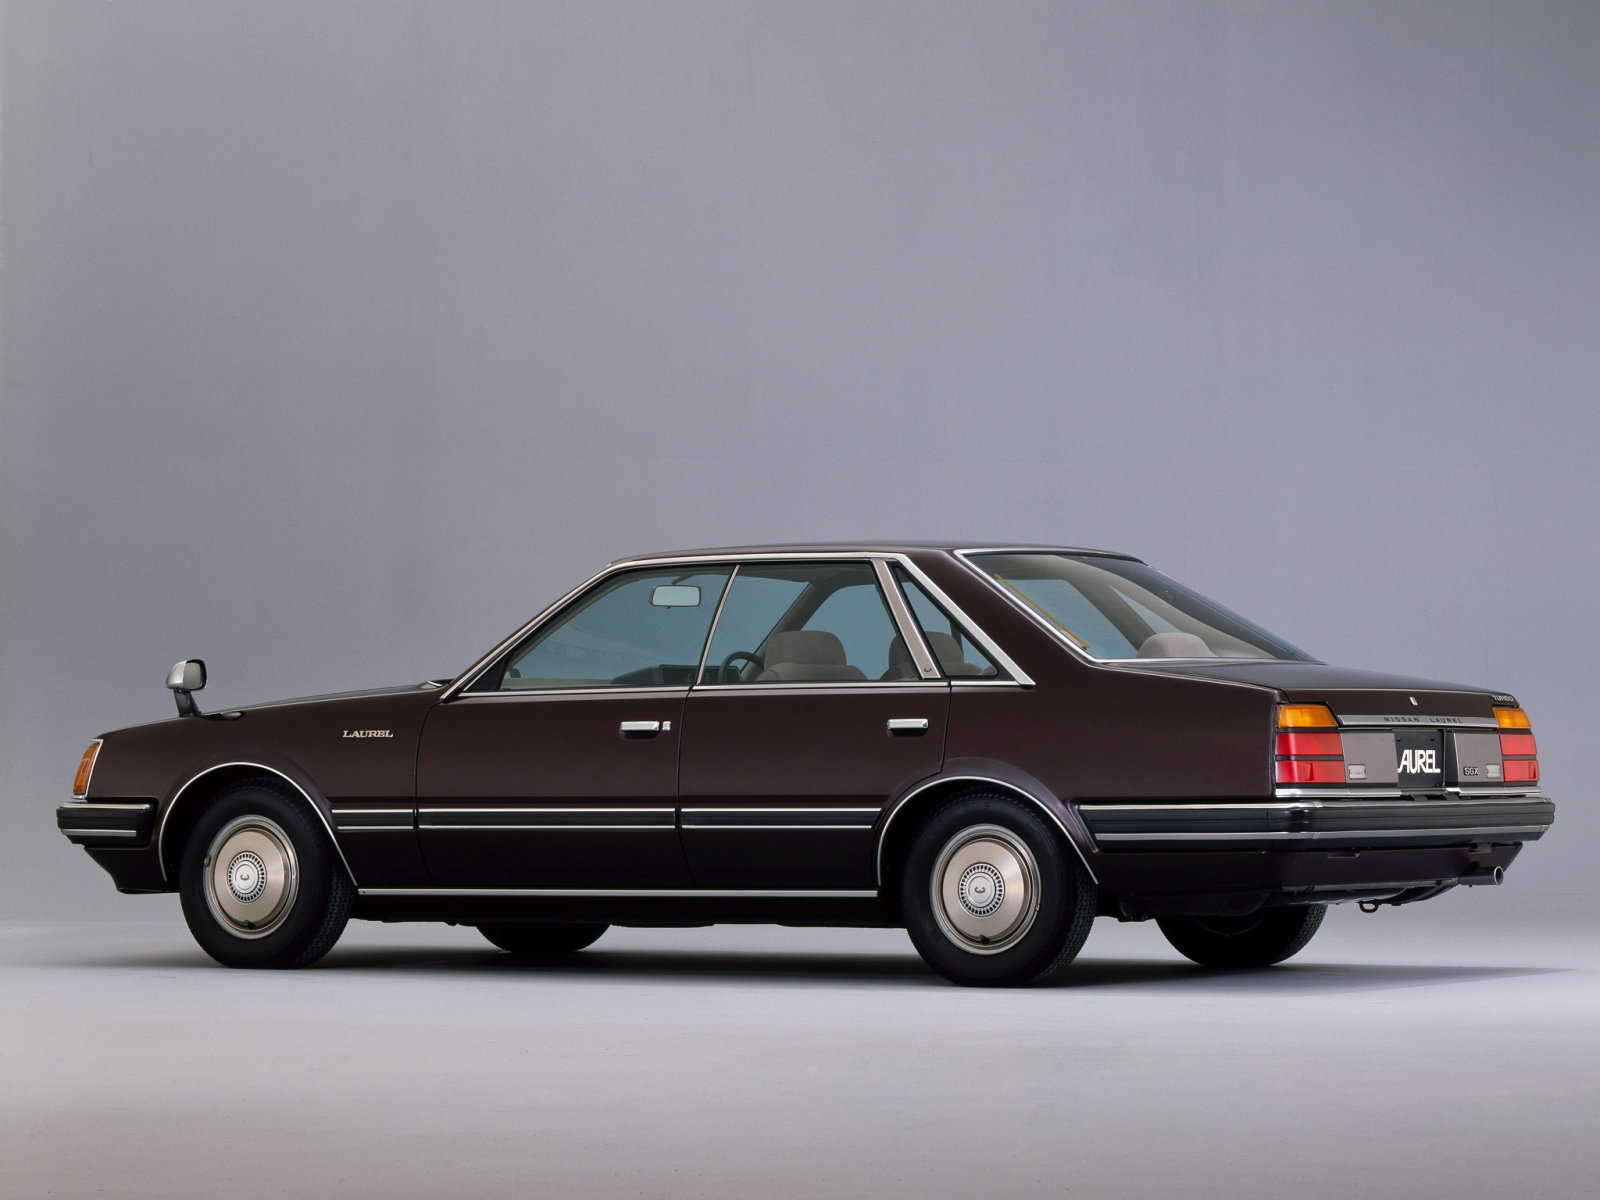 1980 Nissan Laurel #16